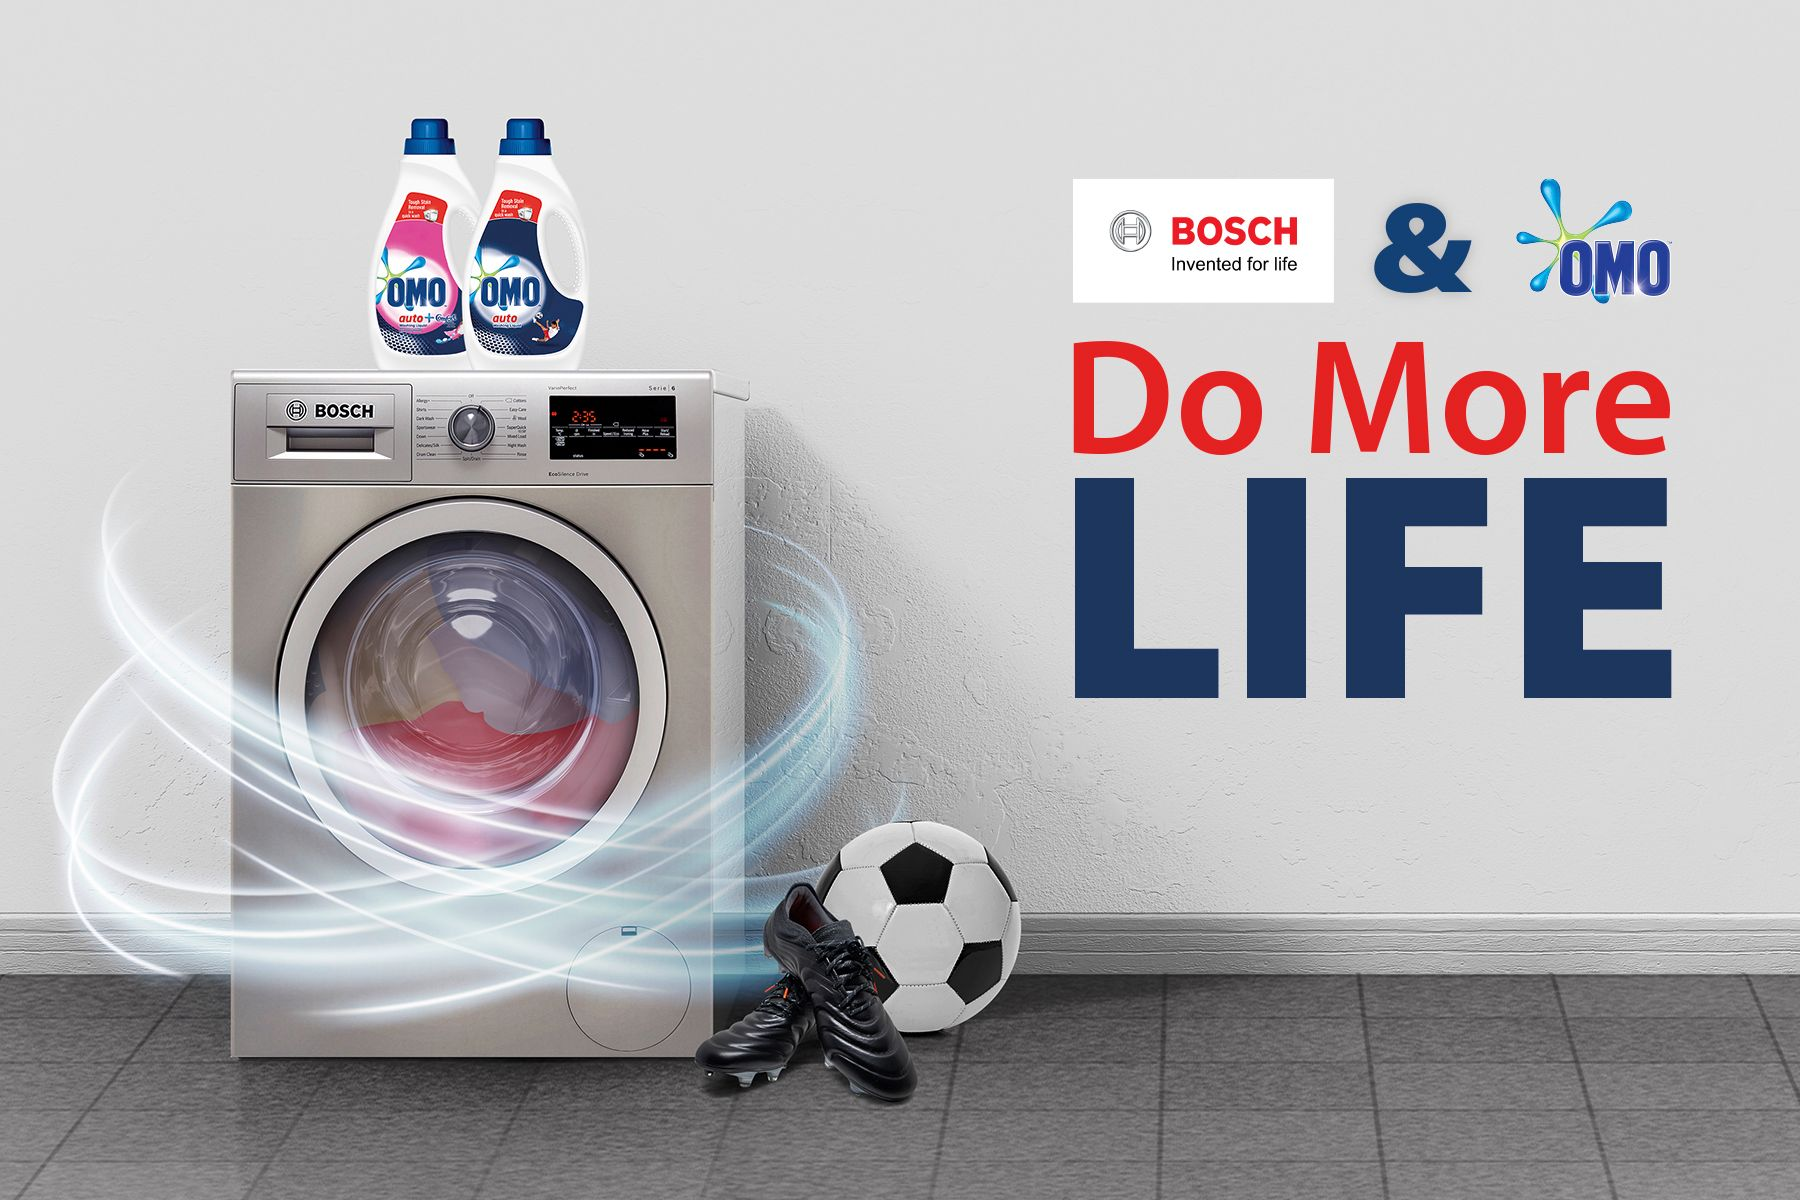 OMO and Bosch products and logos, text: